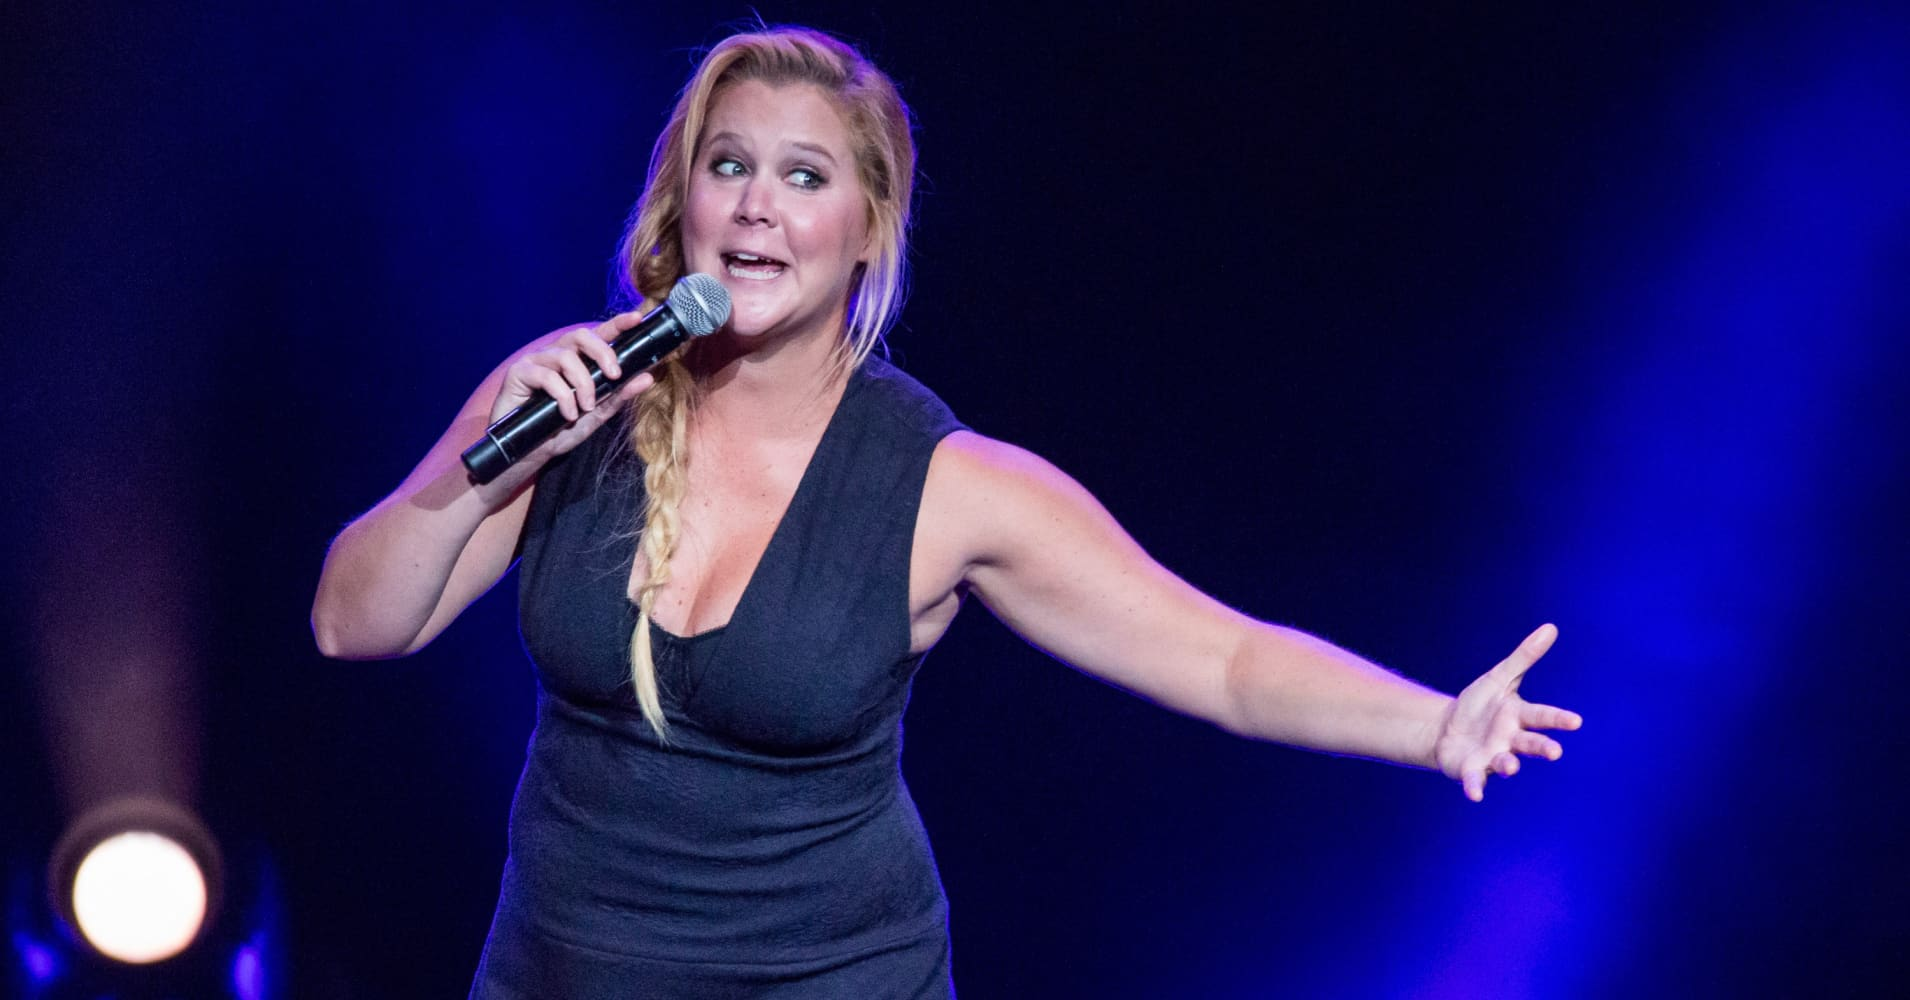 Comedian Amy Schumer performs during the Oddball Comedy And Curiosity Festival at DTE Energy Music Theater on August 30, 2015 in Clarkston, Michigan.